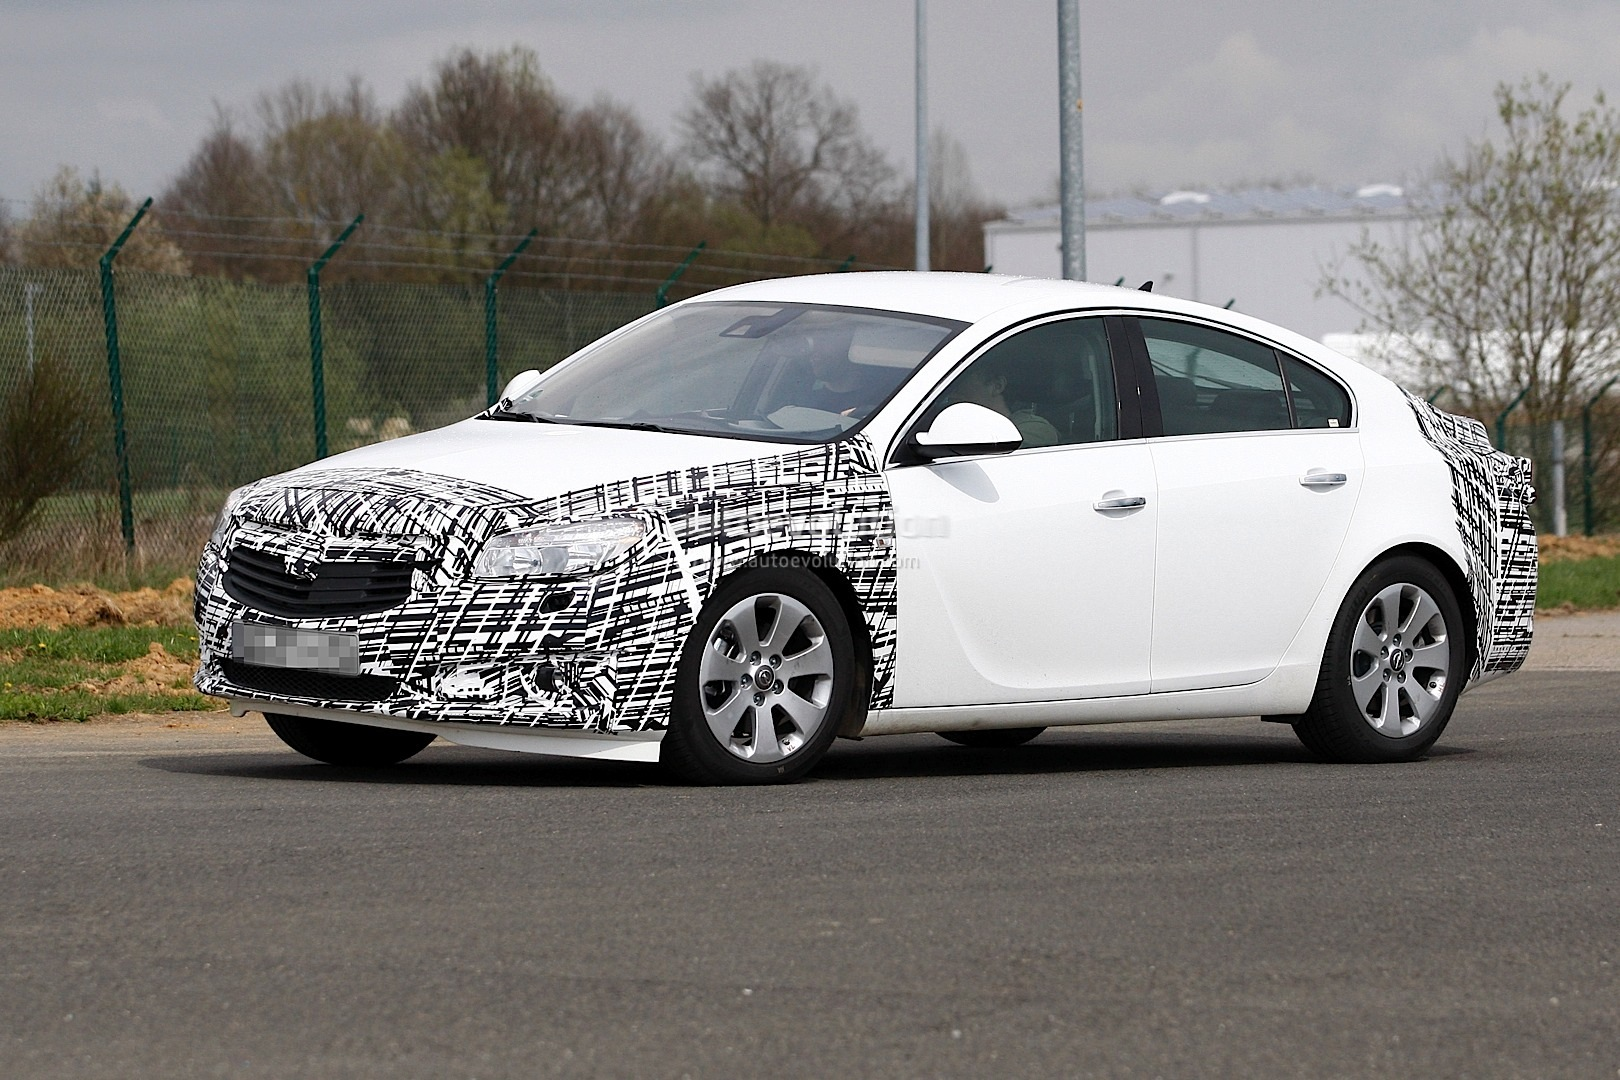 spyshots 2013 opel vauxhall insignia facelift. Black Bedroom Furniture Sets. Home Design Ideas